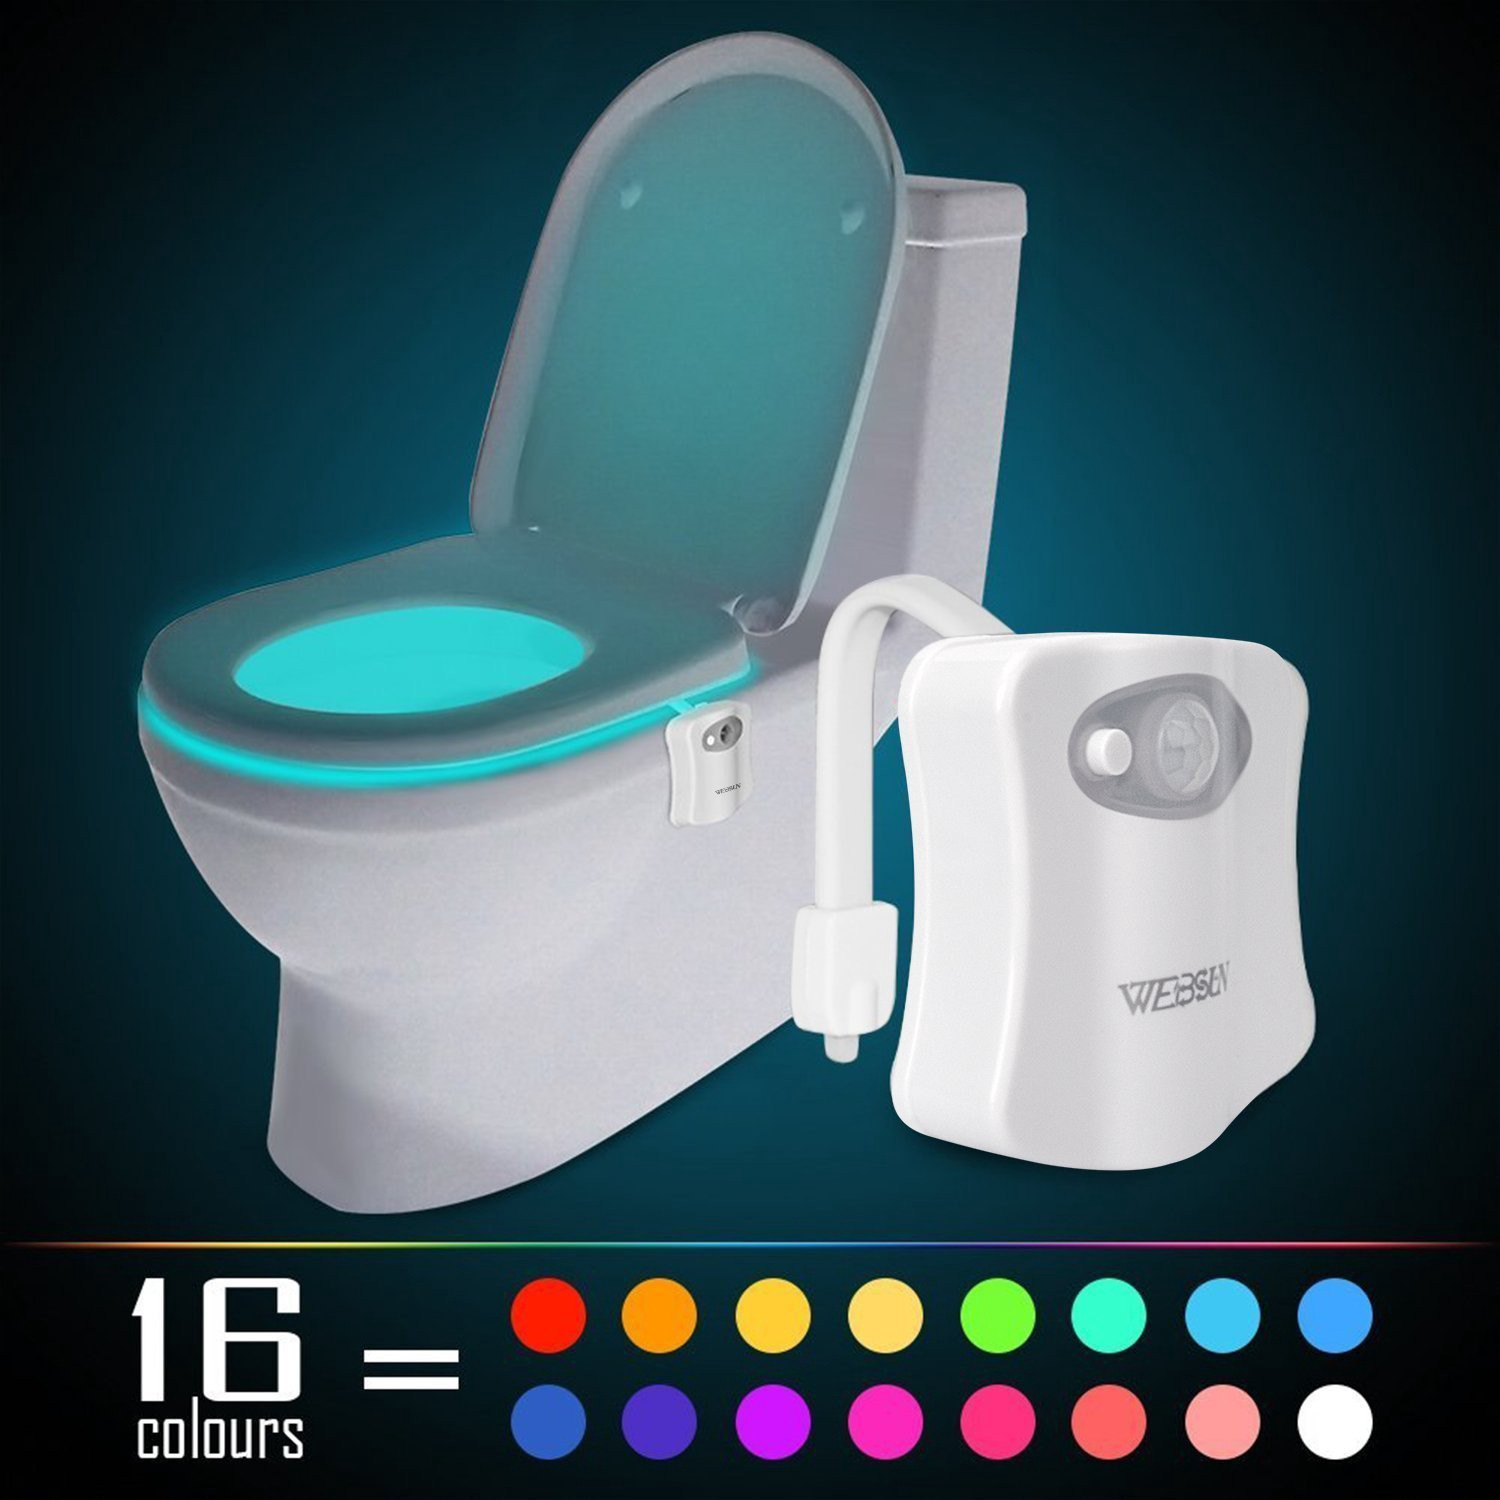 A Glow in the Dark Toilet Seat!?. It's the small things in life